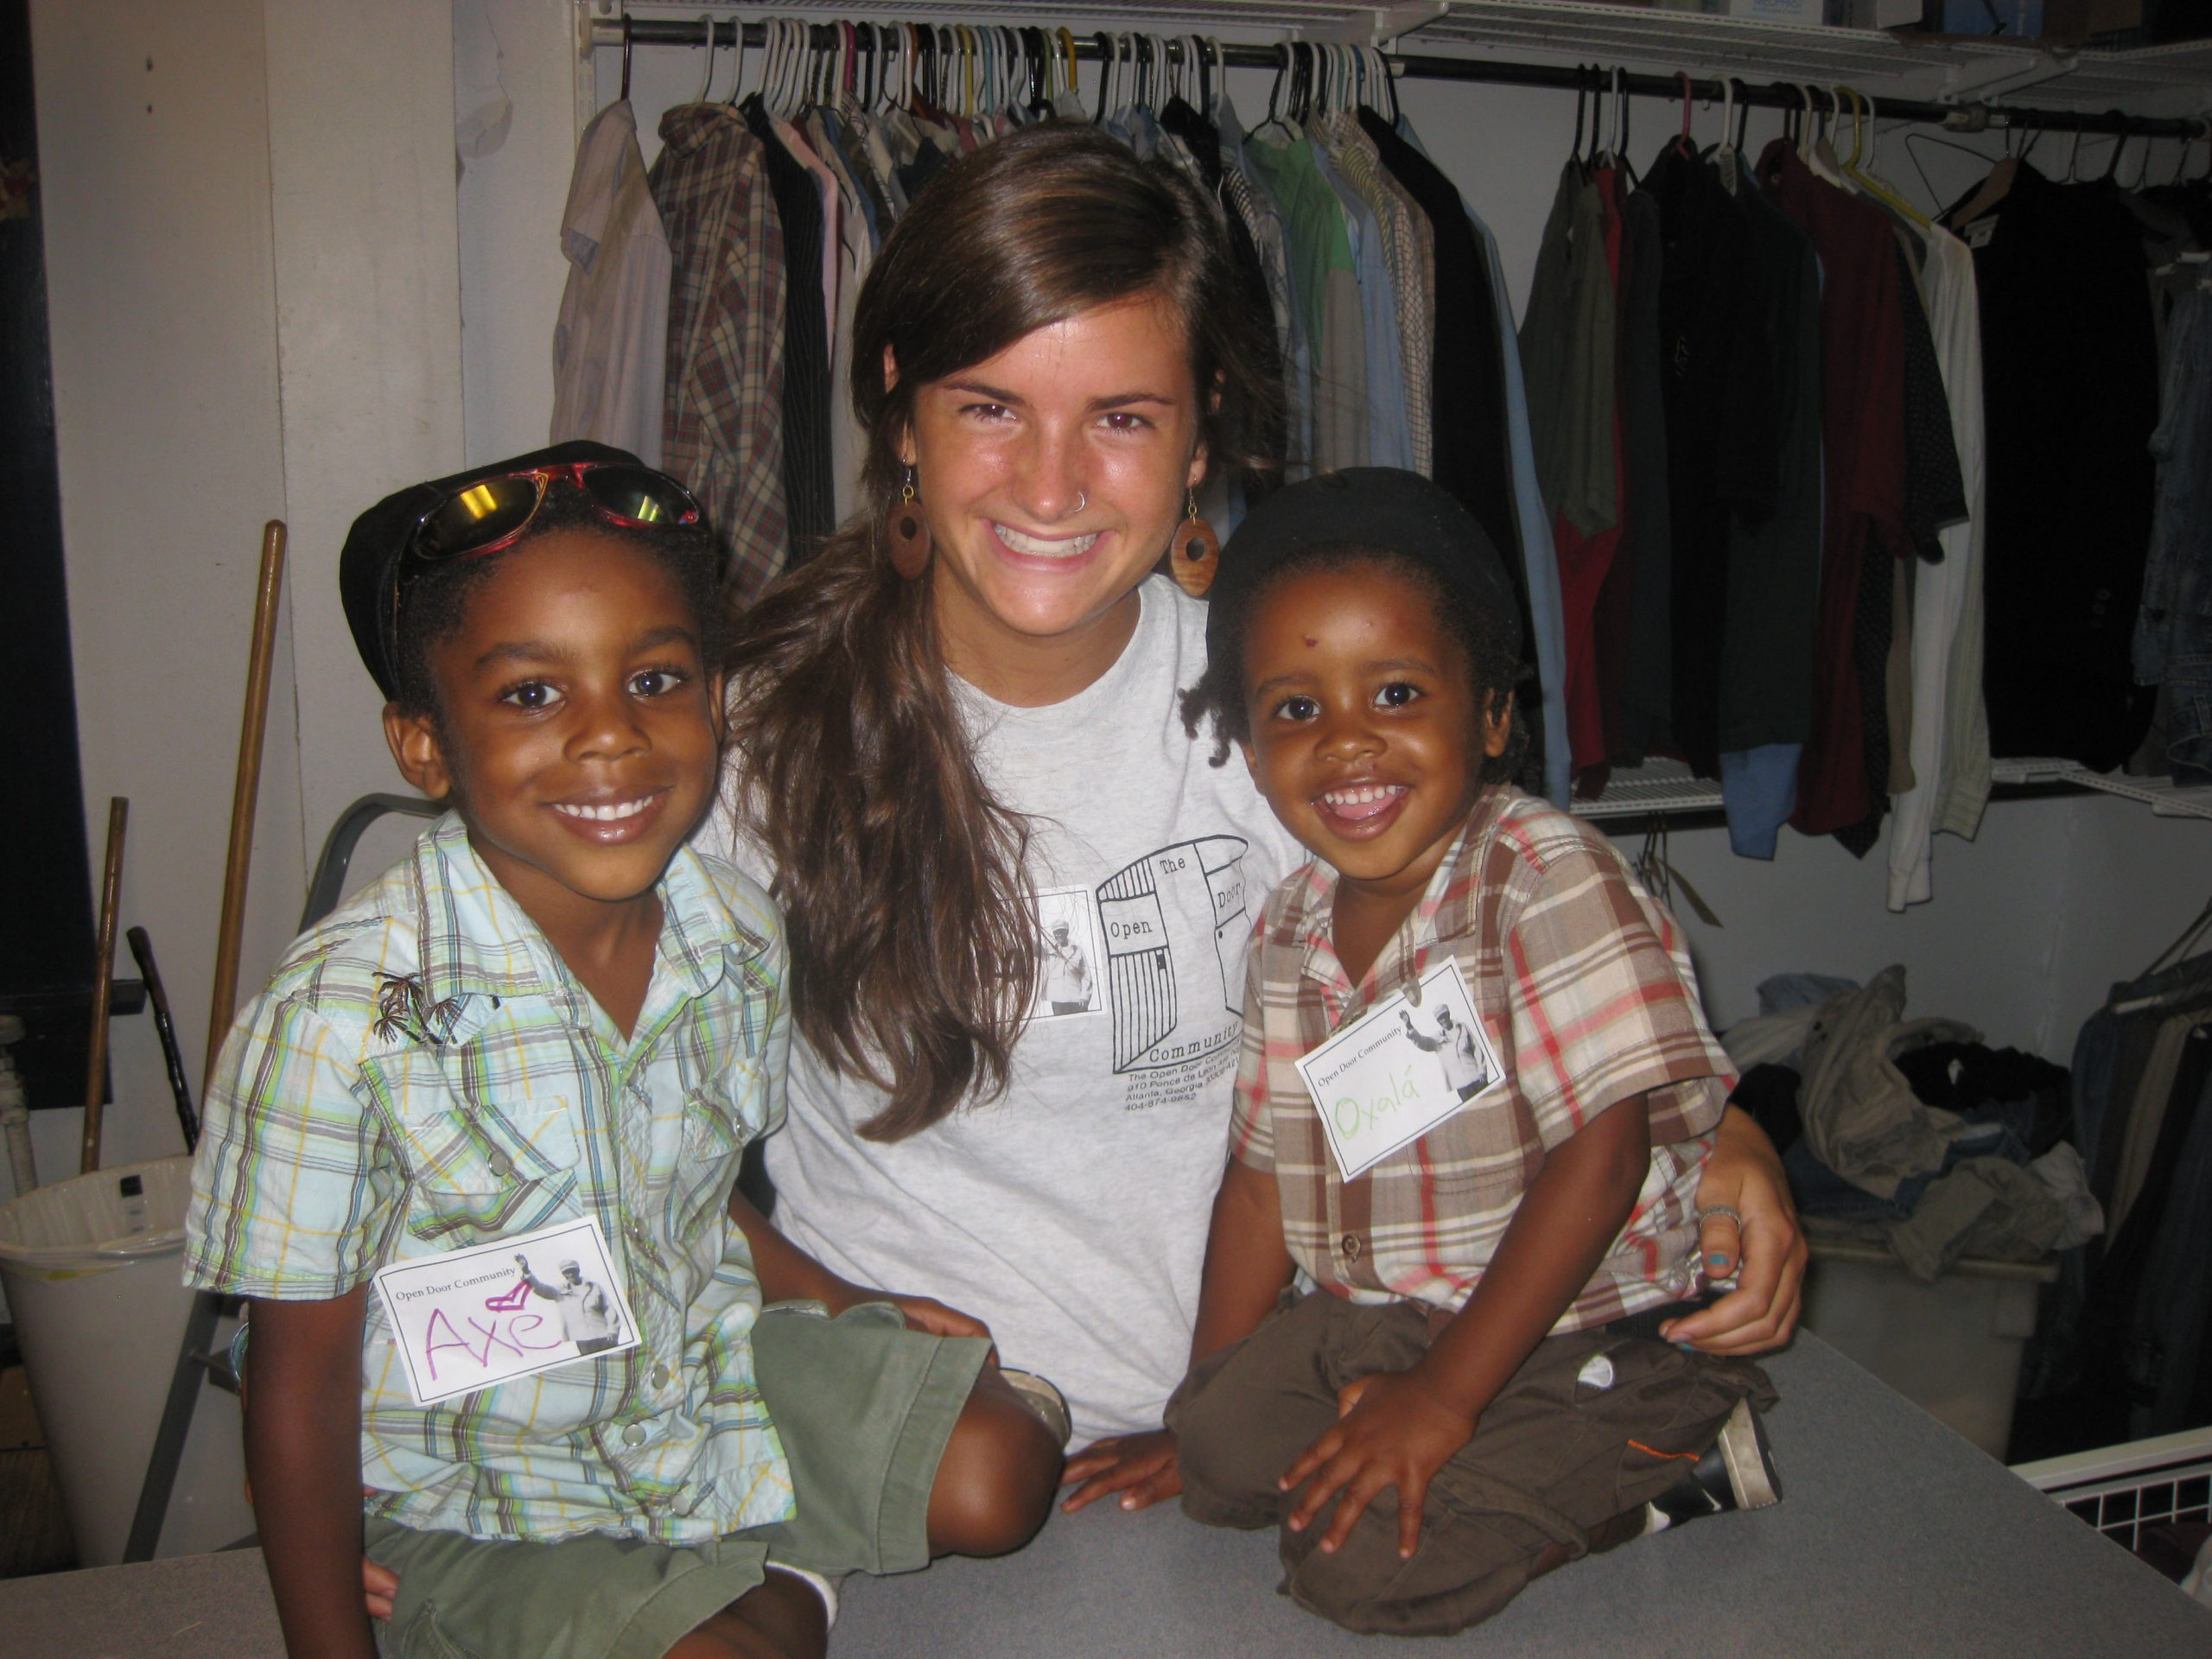 Mara Weaver poses for a picture with two children